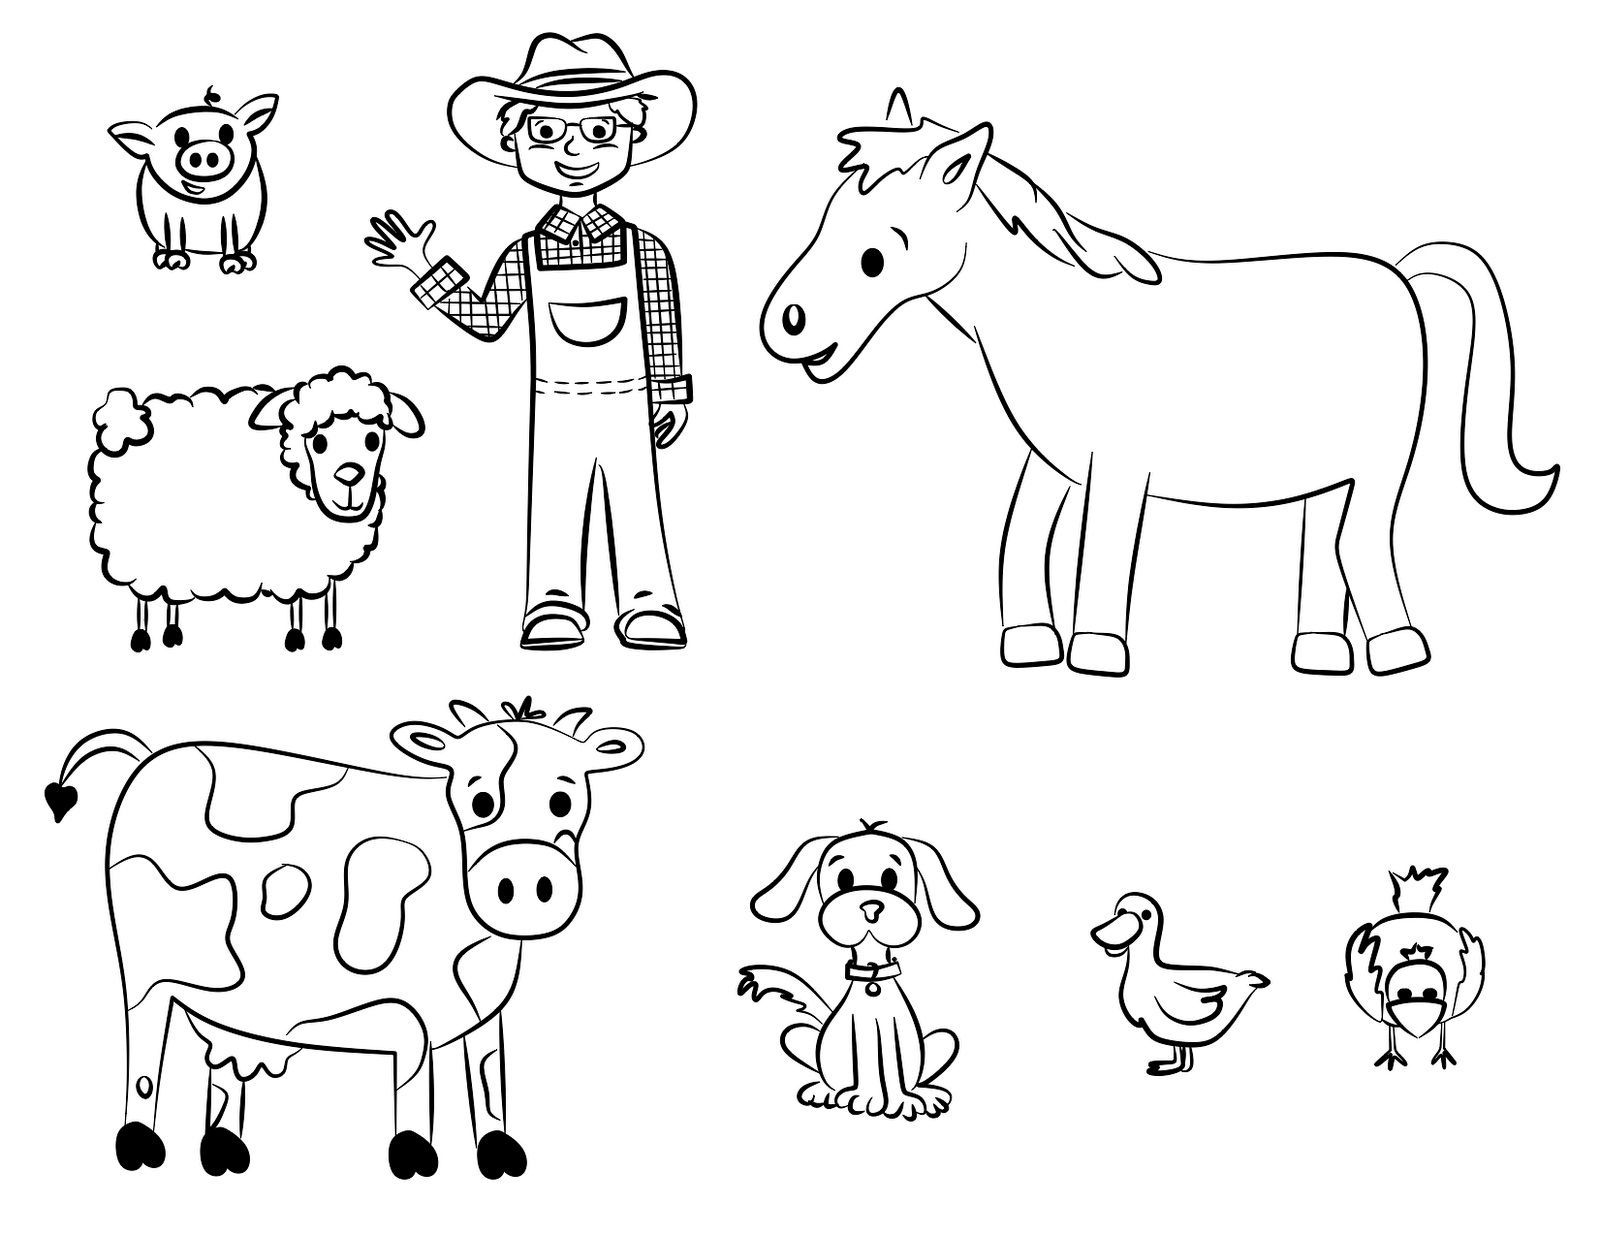 Free Printable Farm Animal Coloring Pages For Kids | June | Farm - Free Printable Farm Animal Cutouts